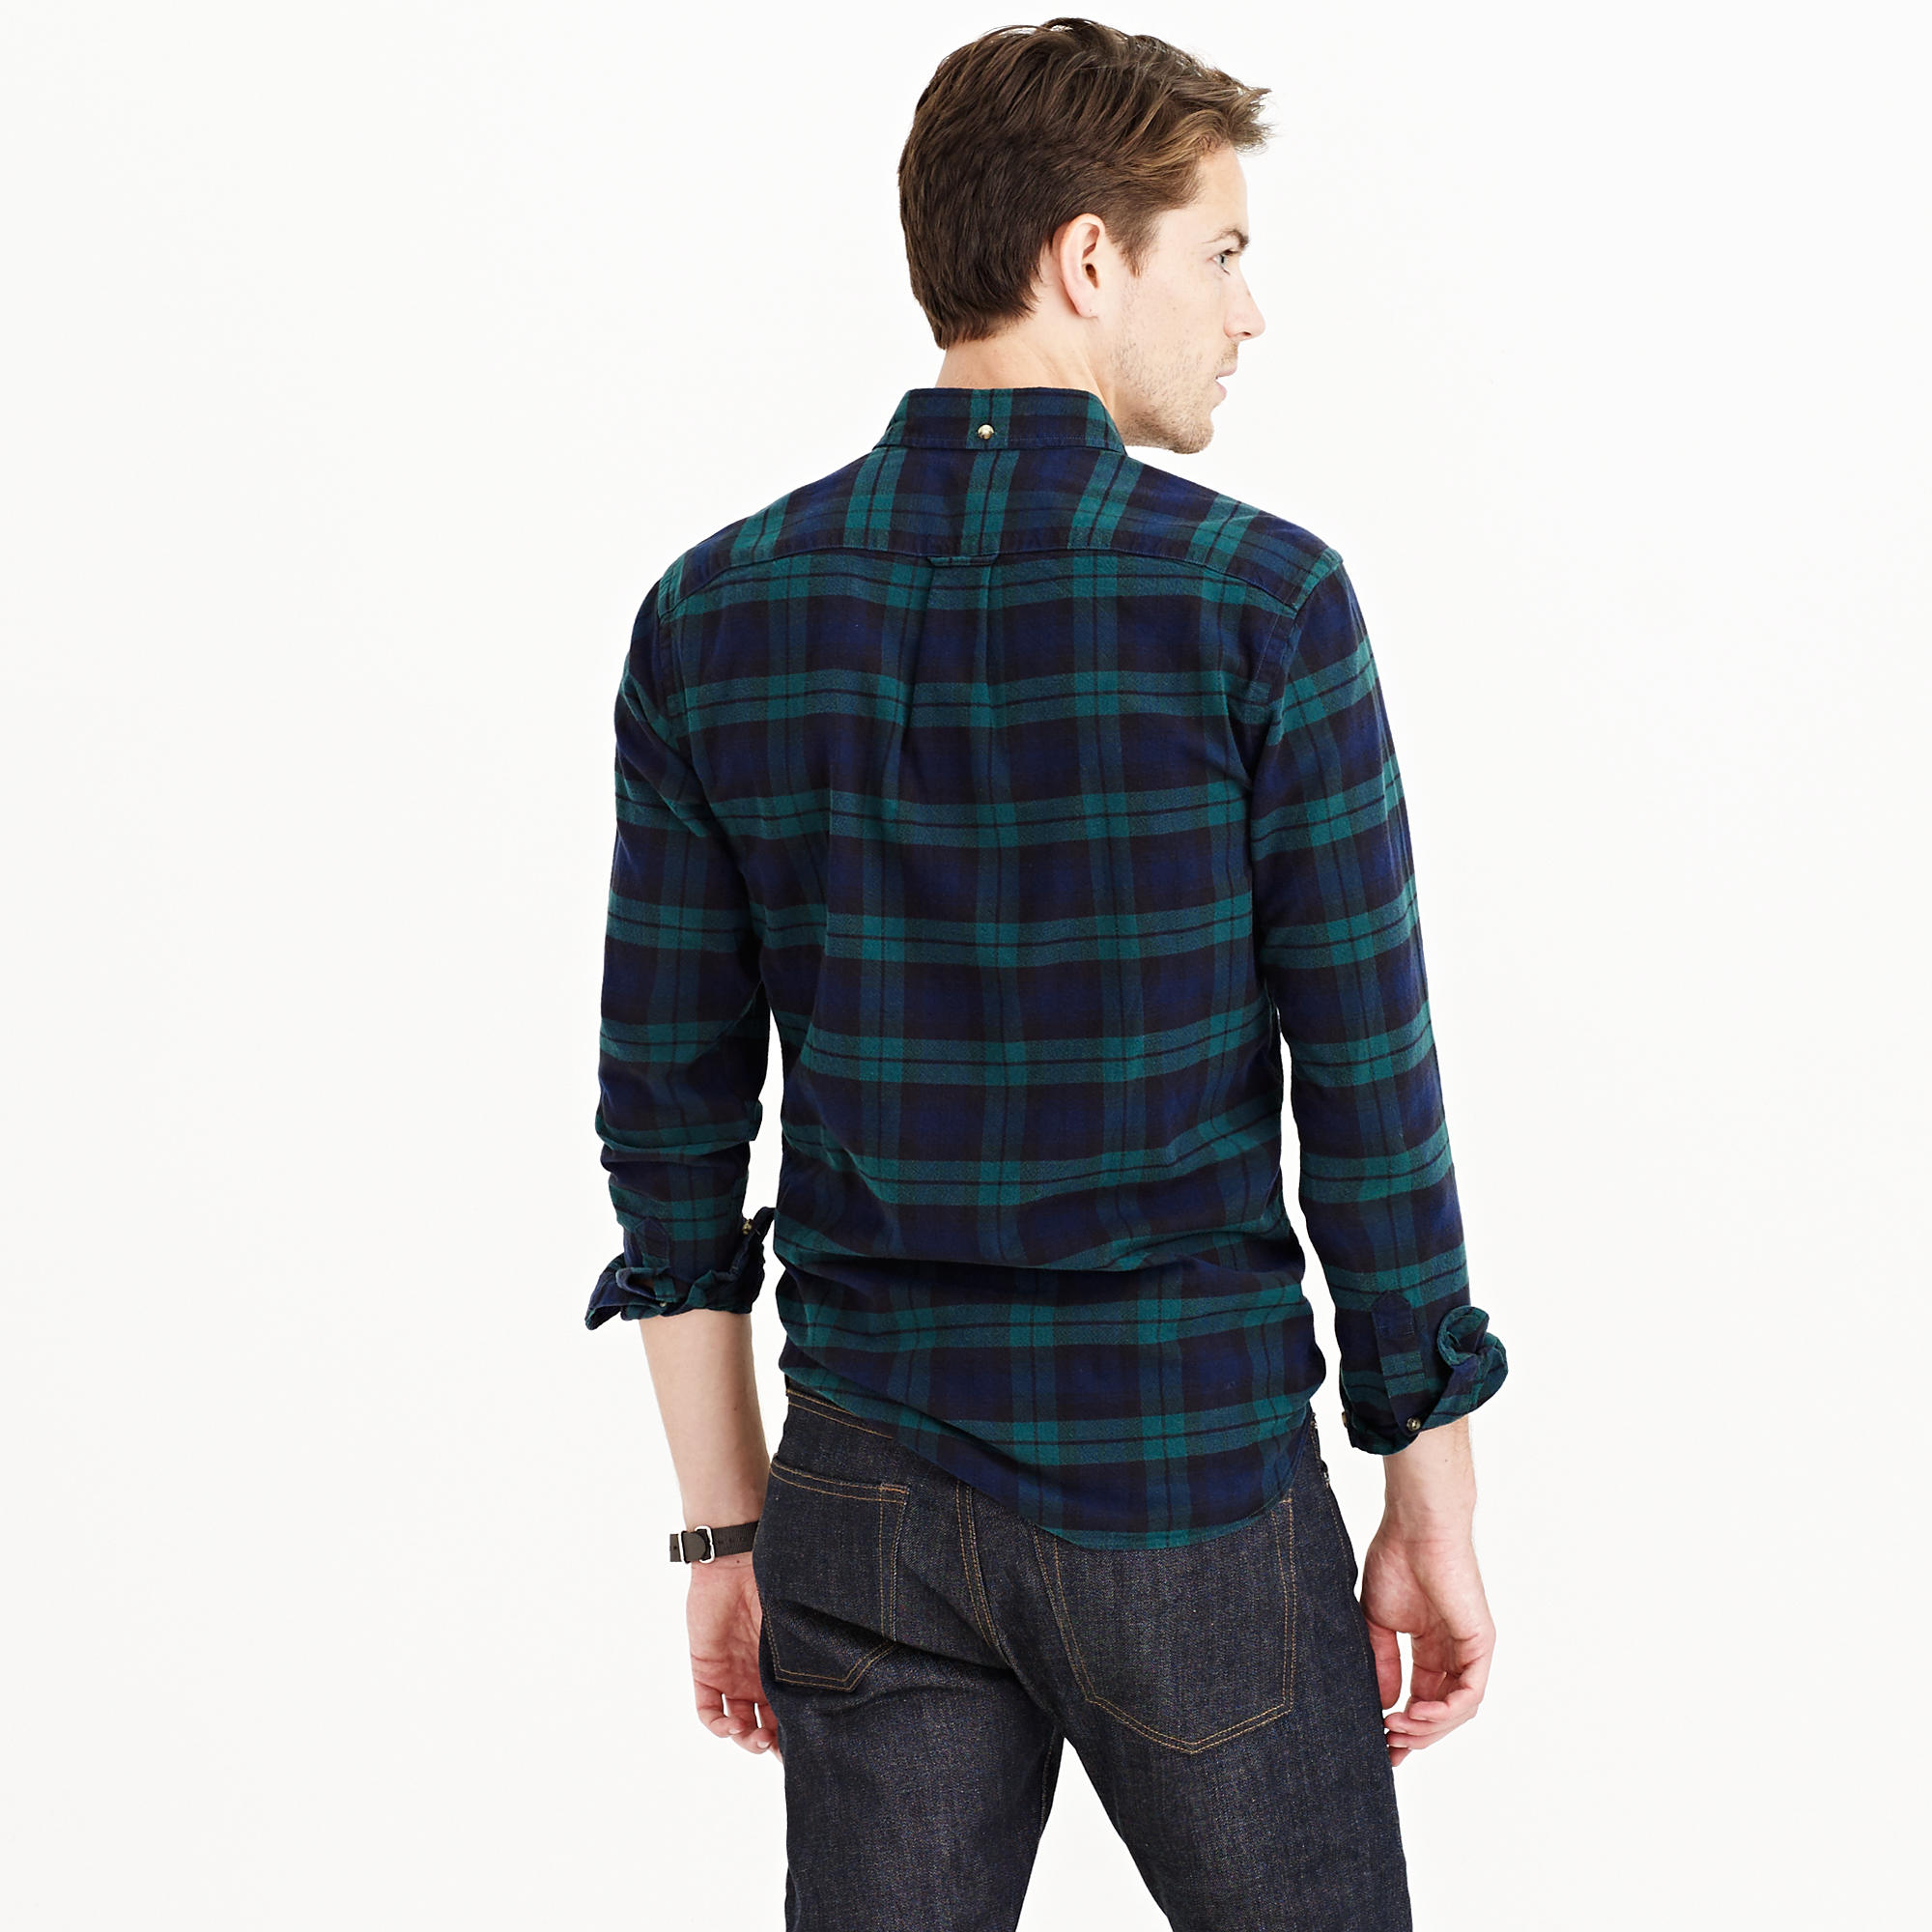 Vintage Oxford Shirt In Black Watch Plaid : Men's Shirts | J.Crew